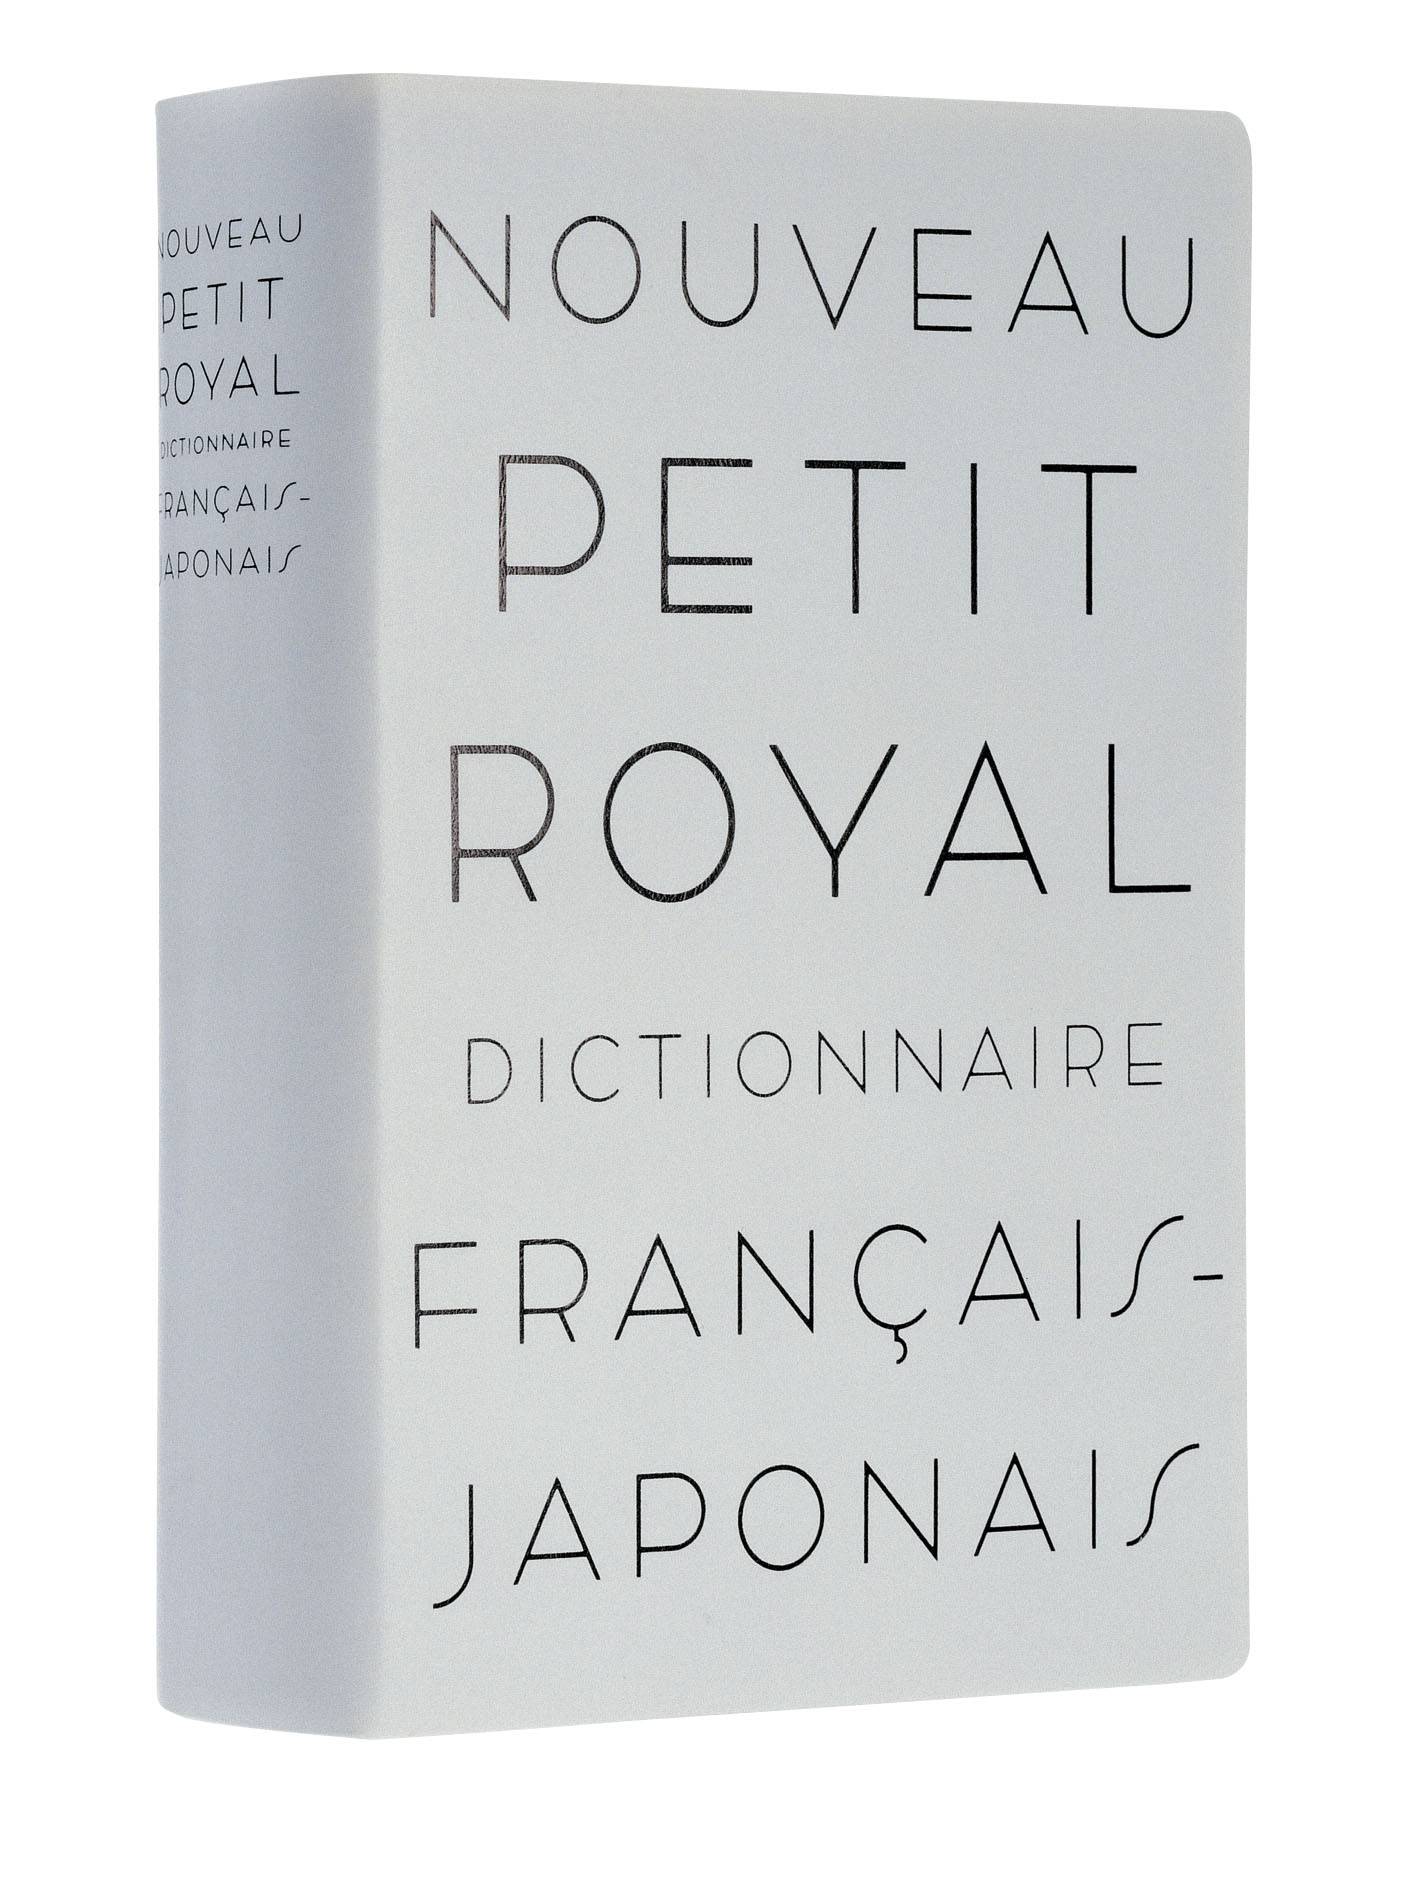 'etit Royal French- Japanese Dictionary' (1996) designed by Kazunari Hattori